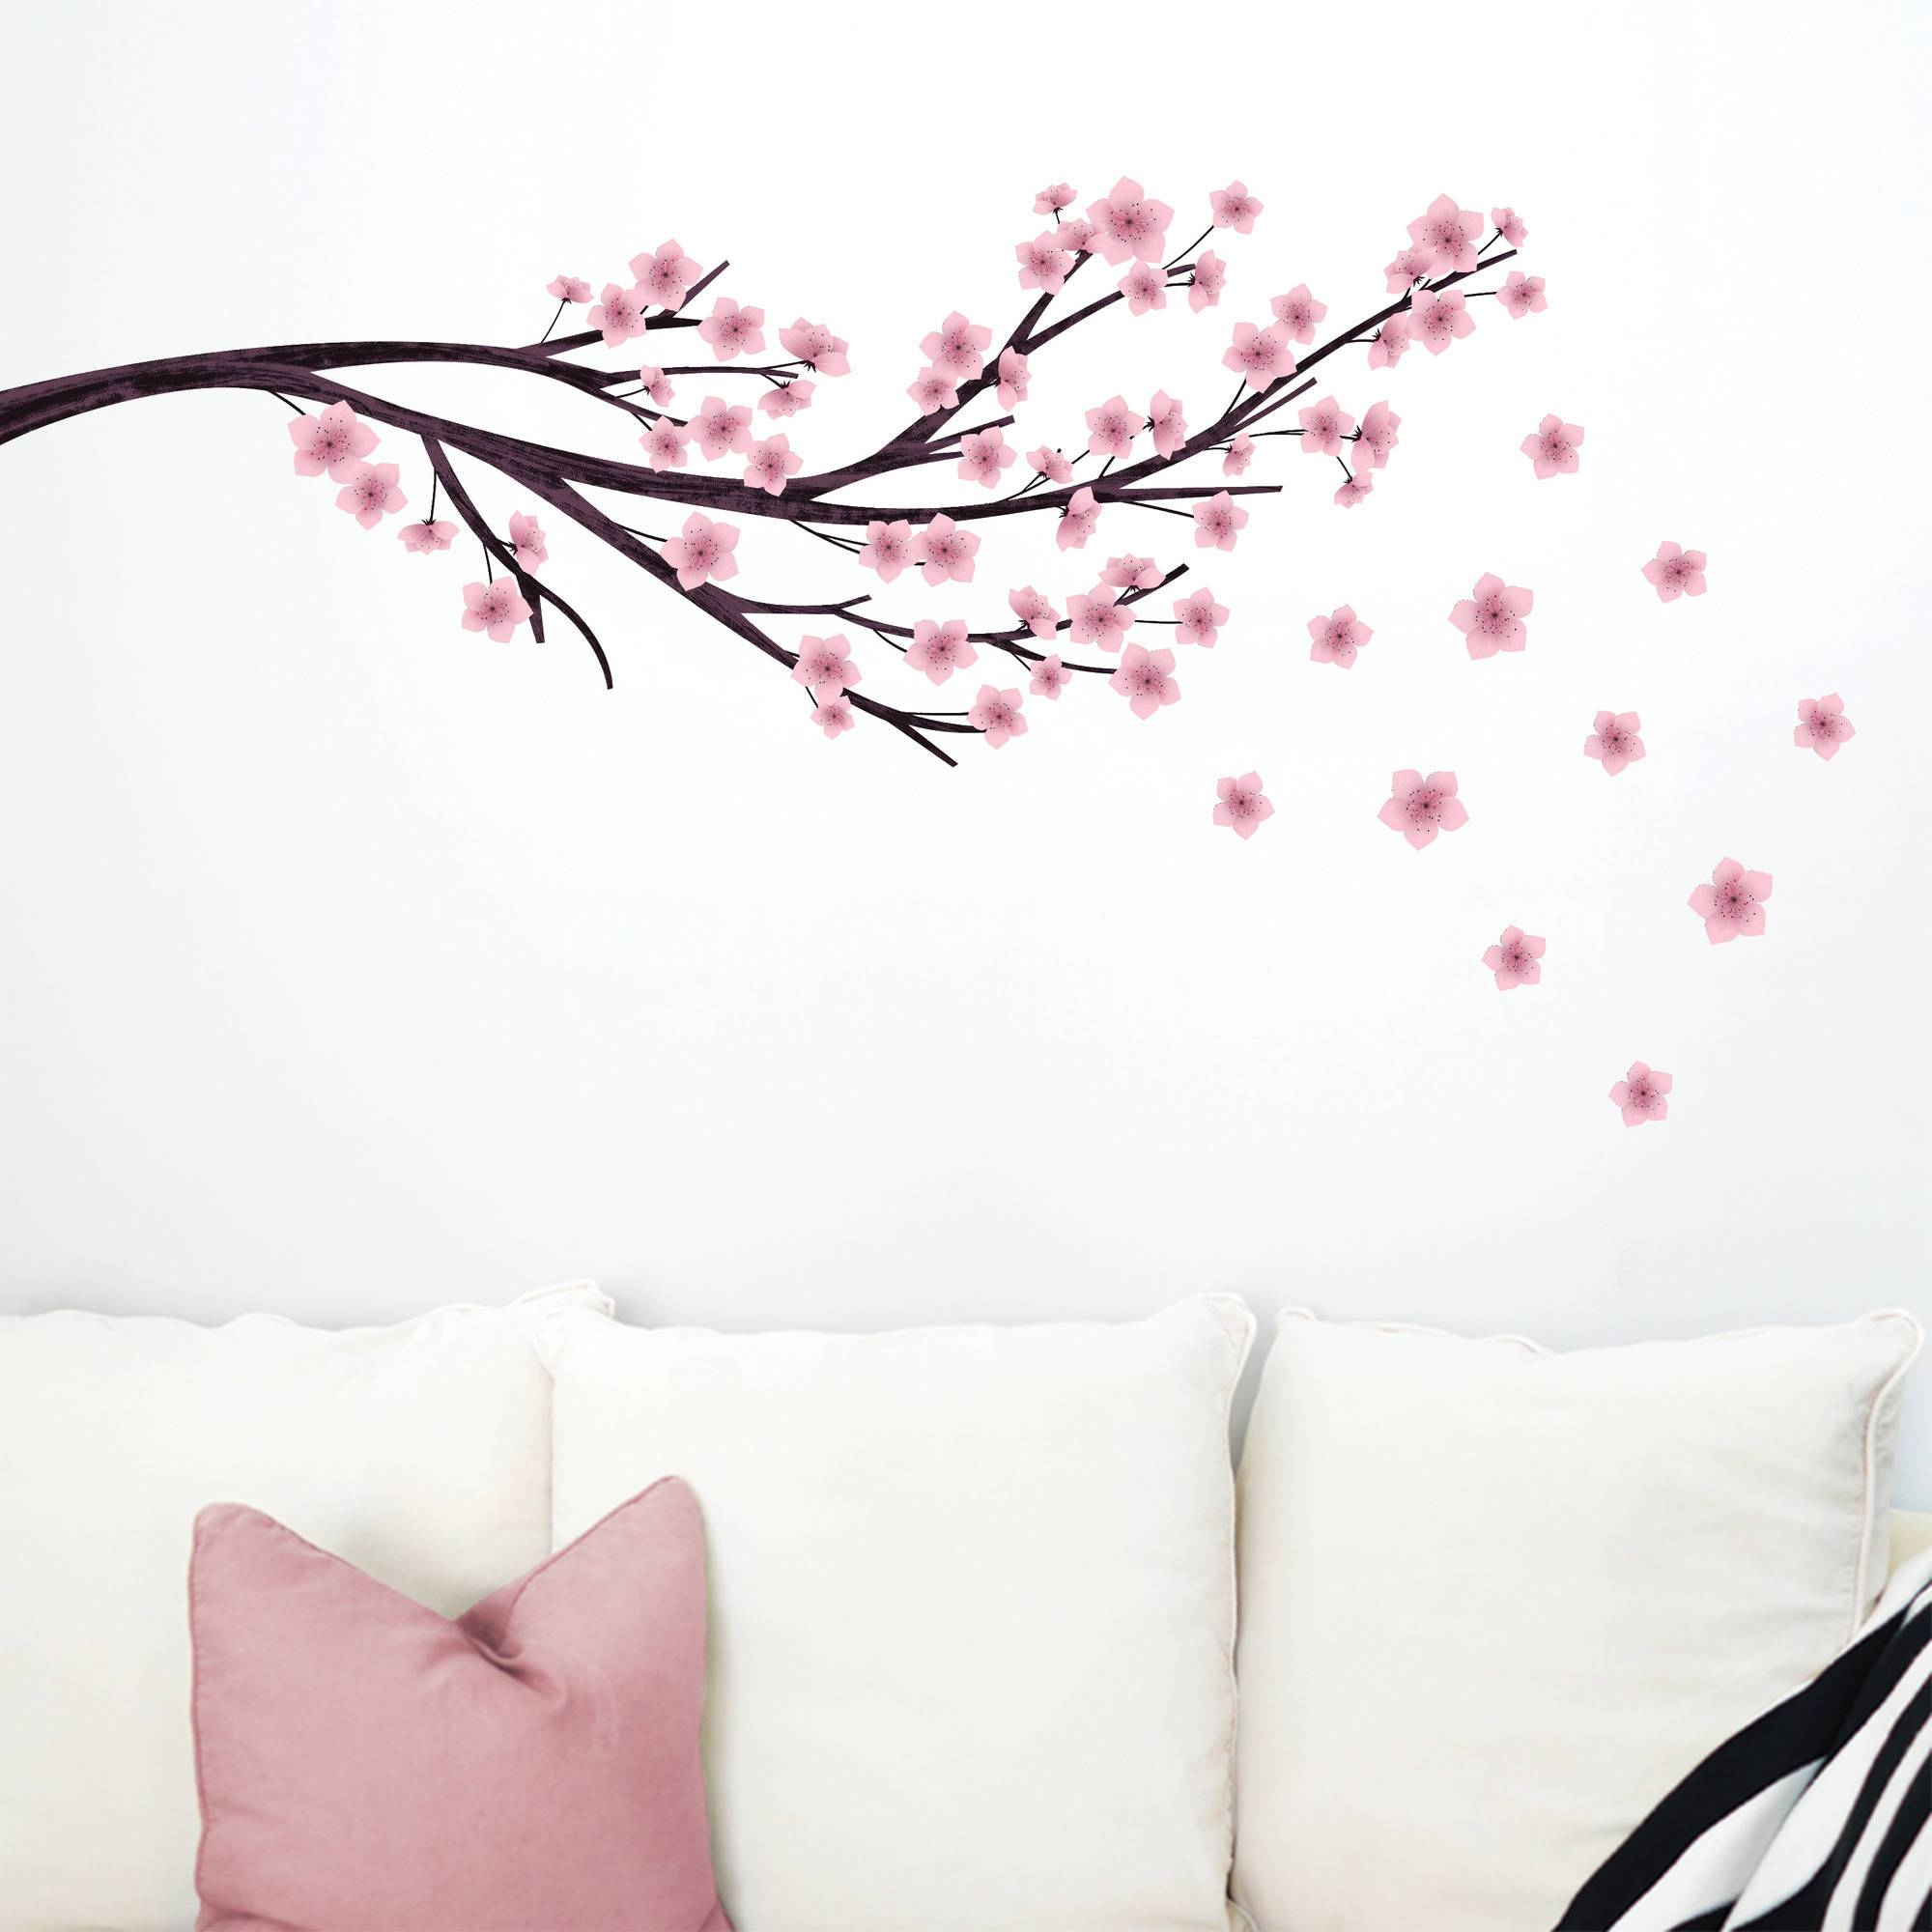 Dcwv Vinyl Decal Cherry Blossom With Birds Wall Decal – Walmart Inside Most Up To Date Walmart Wall Stickers (View 4 of 25)